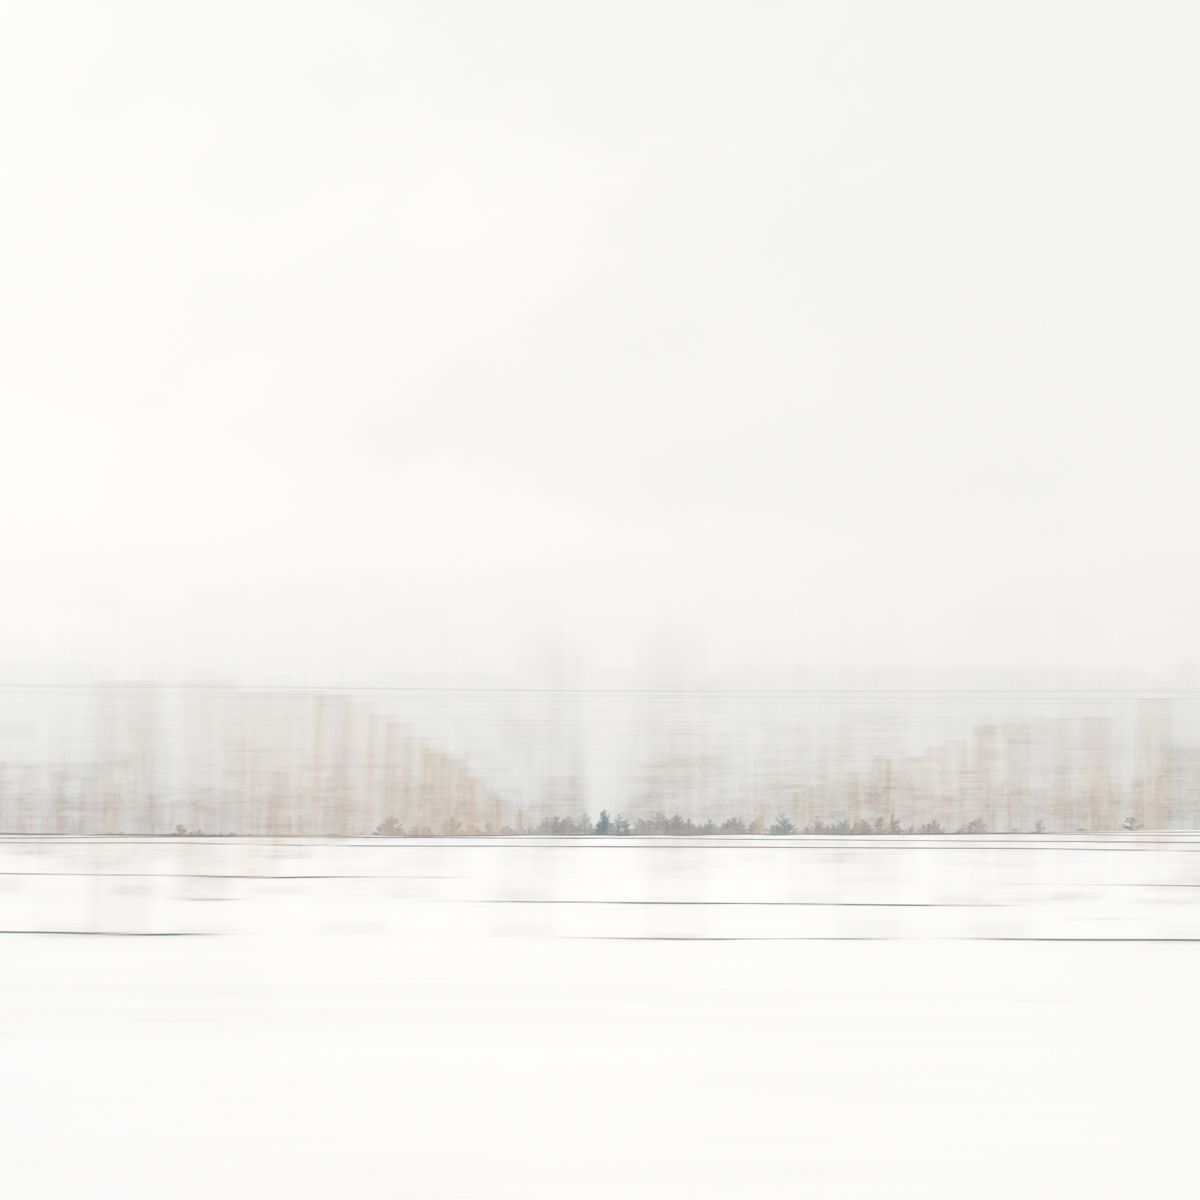 DebraBilow_Winter Field North Country_No. 4.jpg